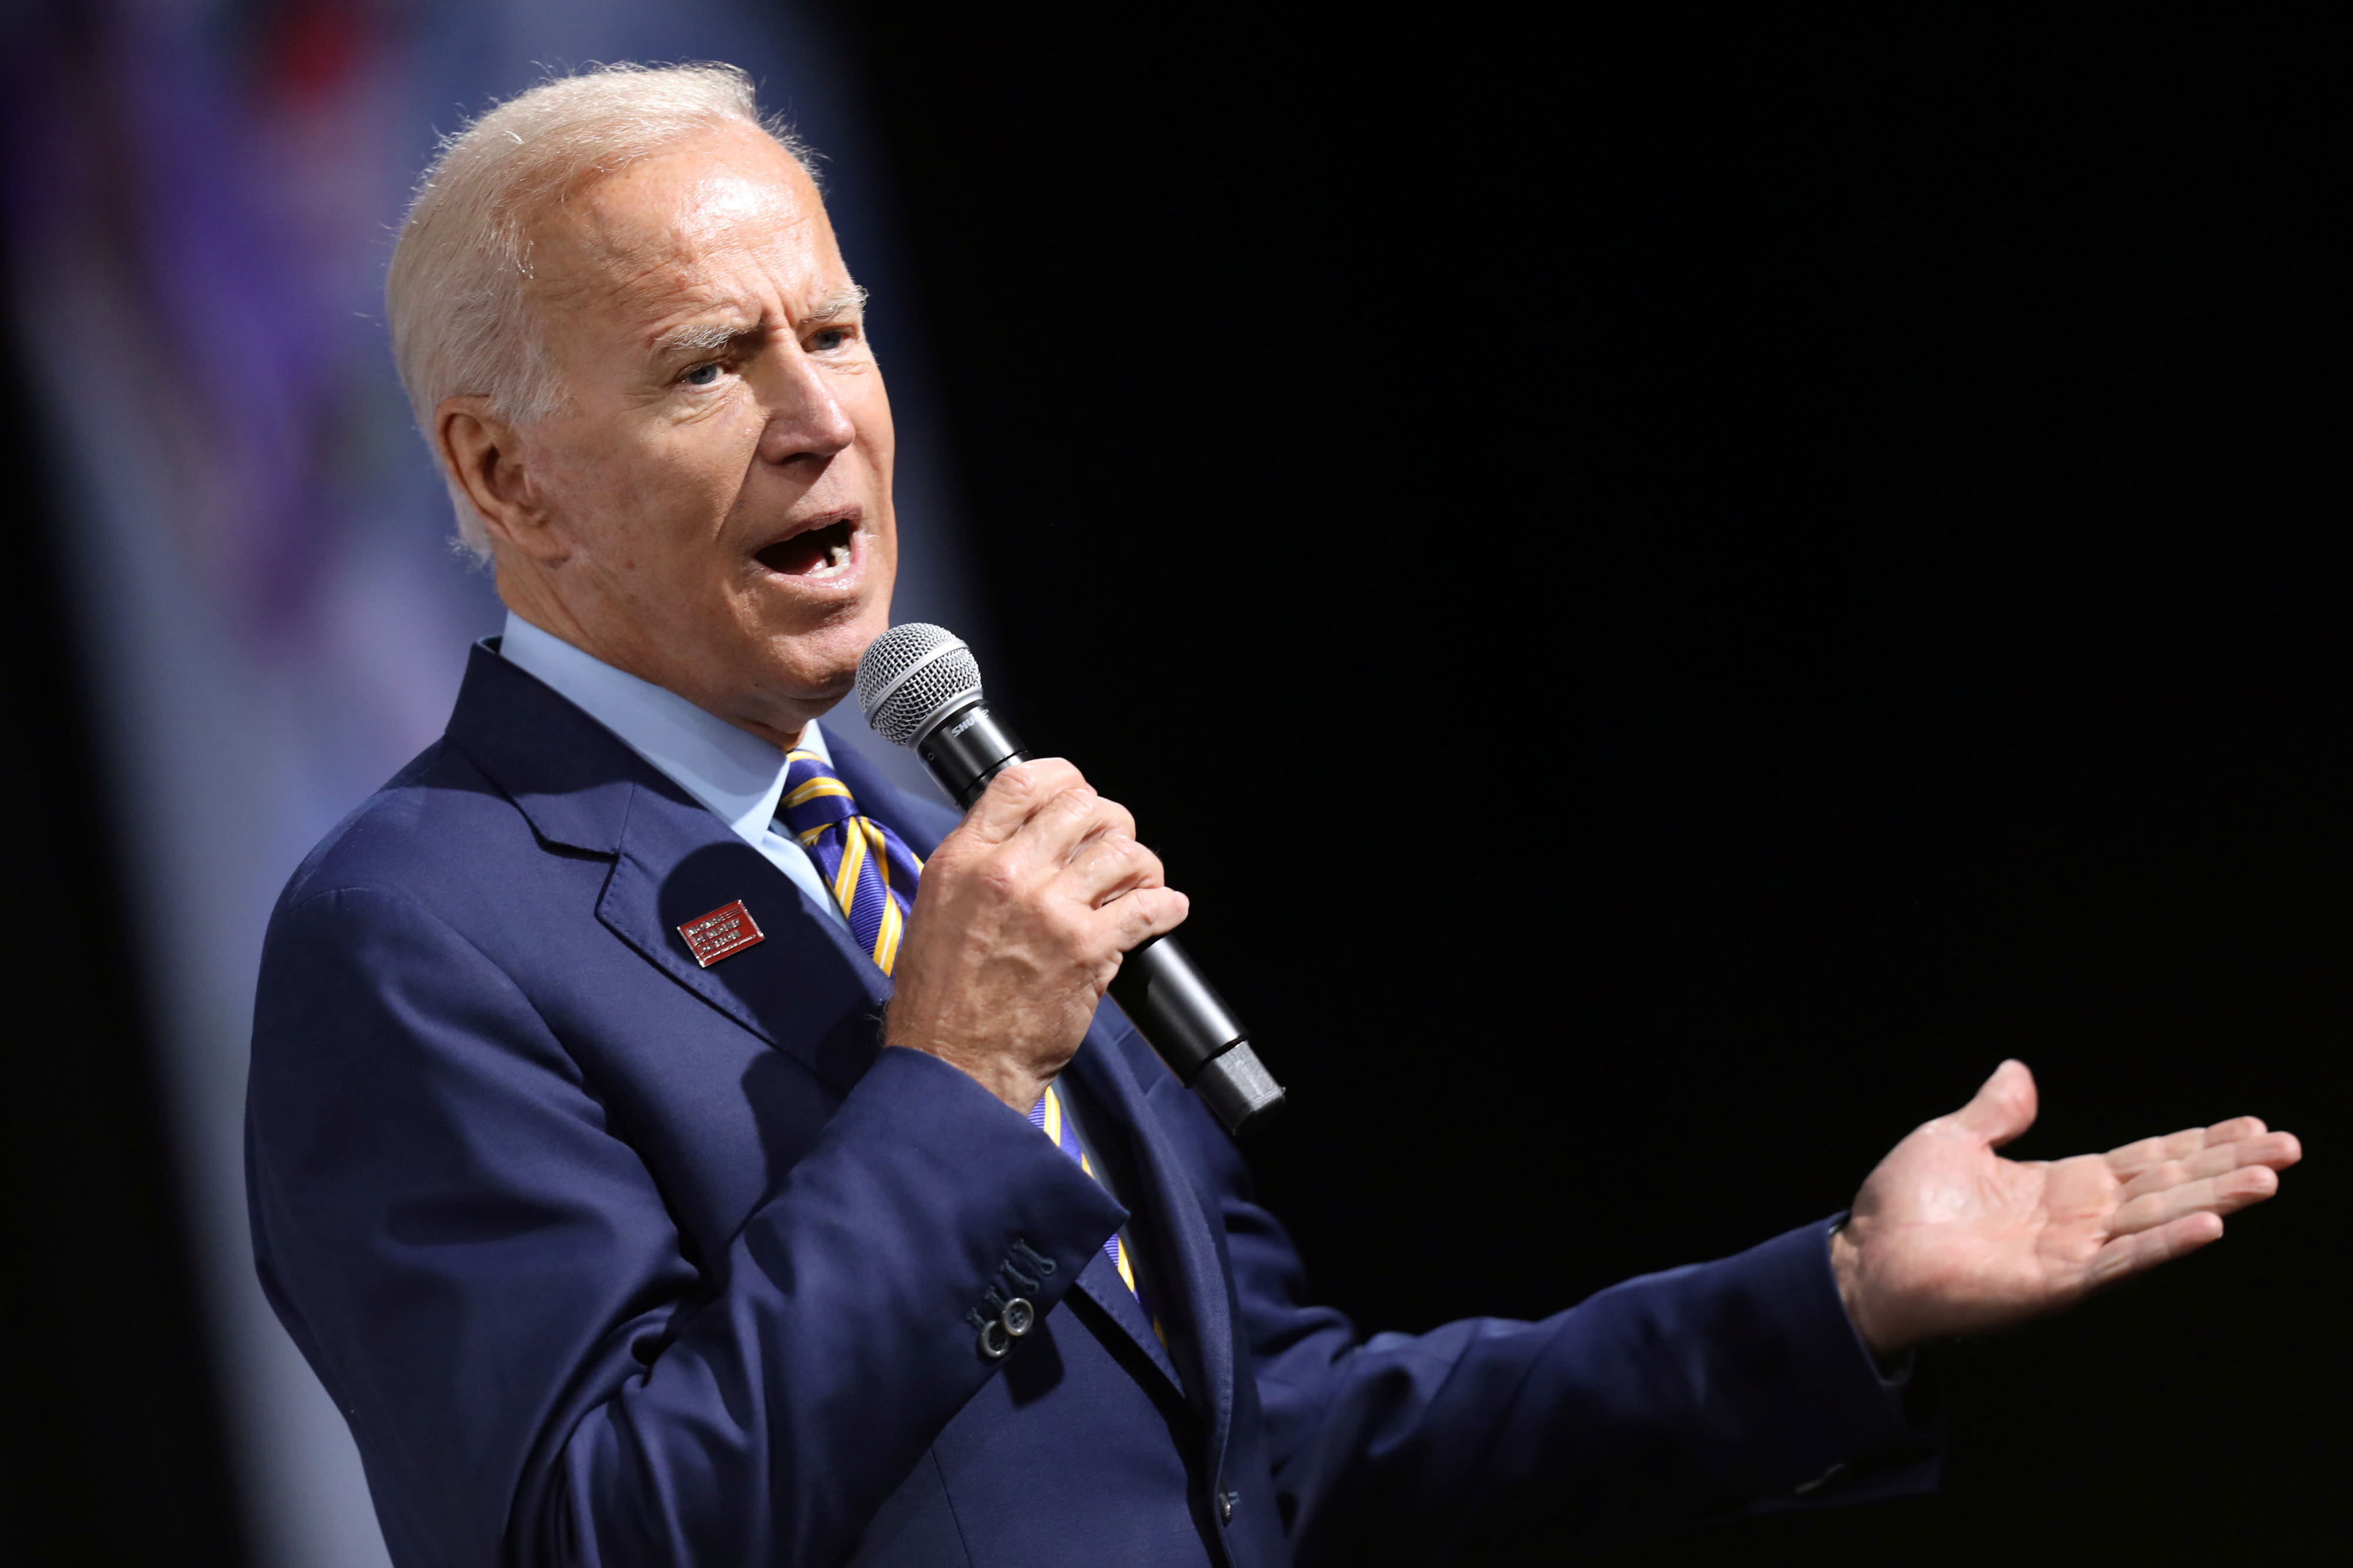 Biden says Trump should release transcript of Ukraine call so 'the American people can judge for themselves'